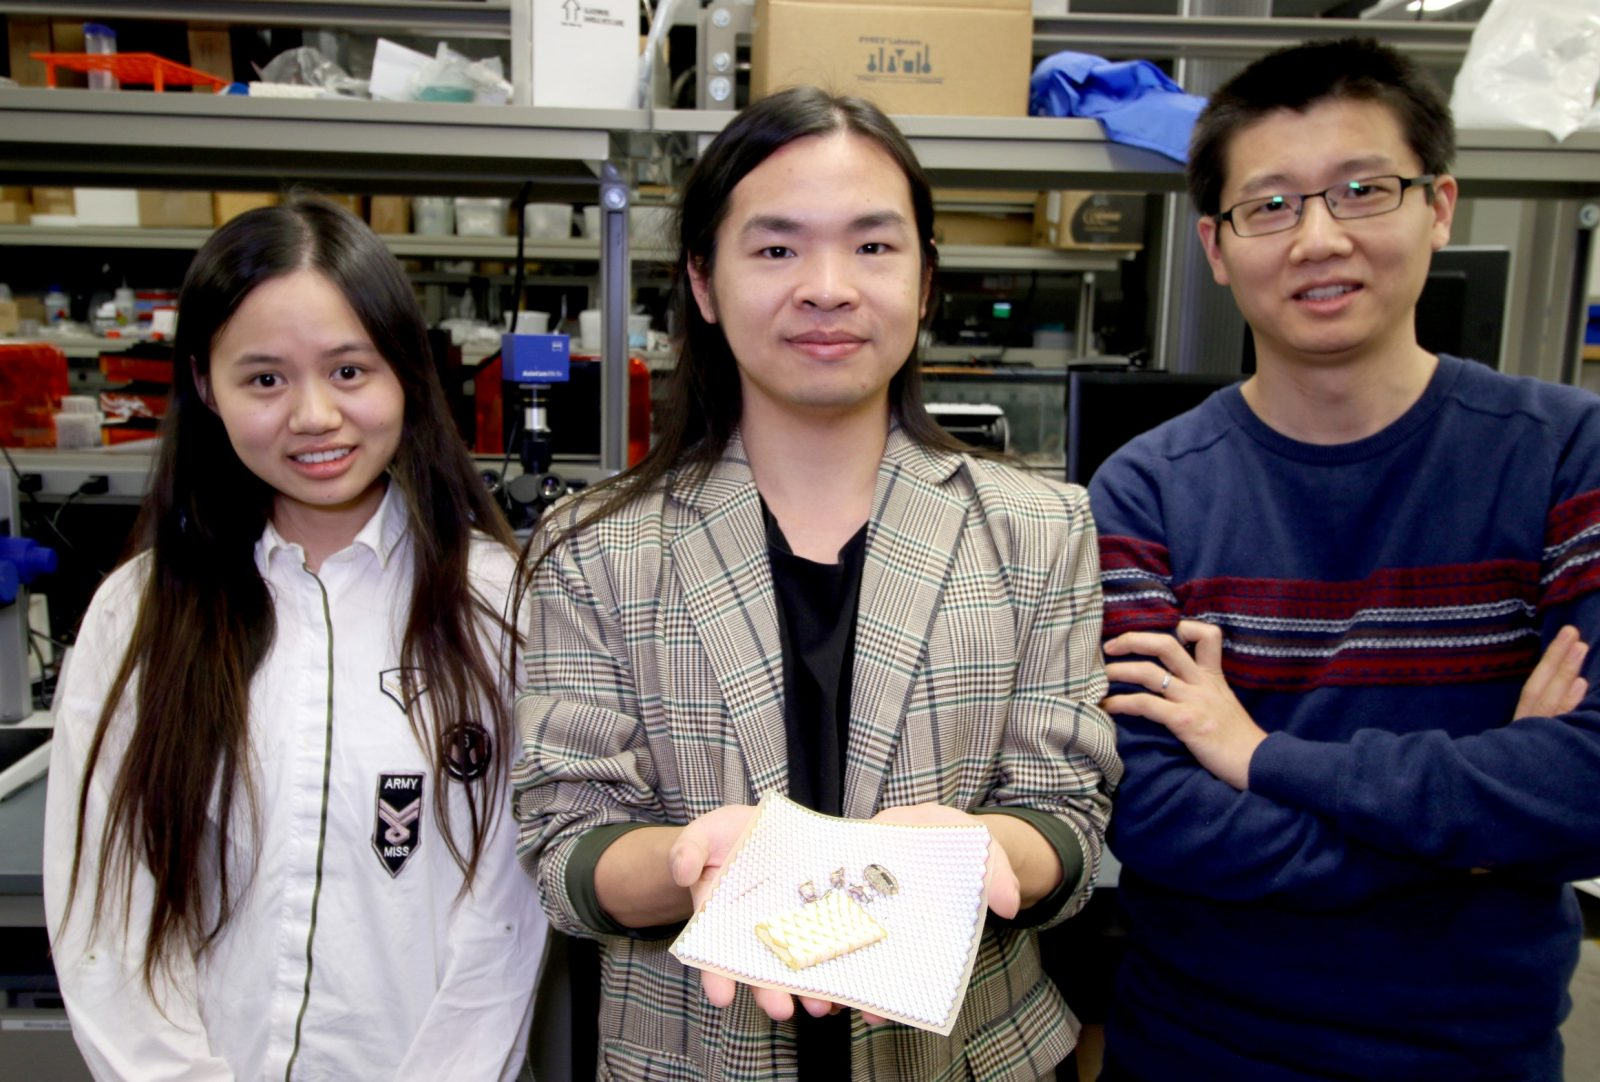 Assistant Professor of mechanical engineering Ling Li, right, with doctoral students Ting Yang, left, and Zhifei Deng, center, holding the 3D printed scale armour. Photo via Virginia Tech.